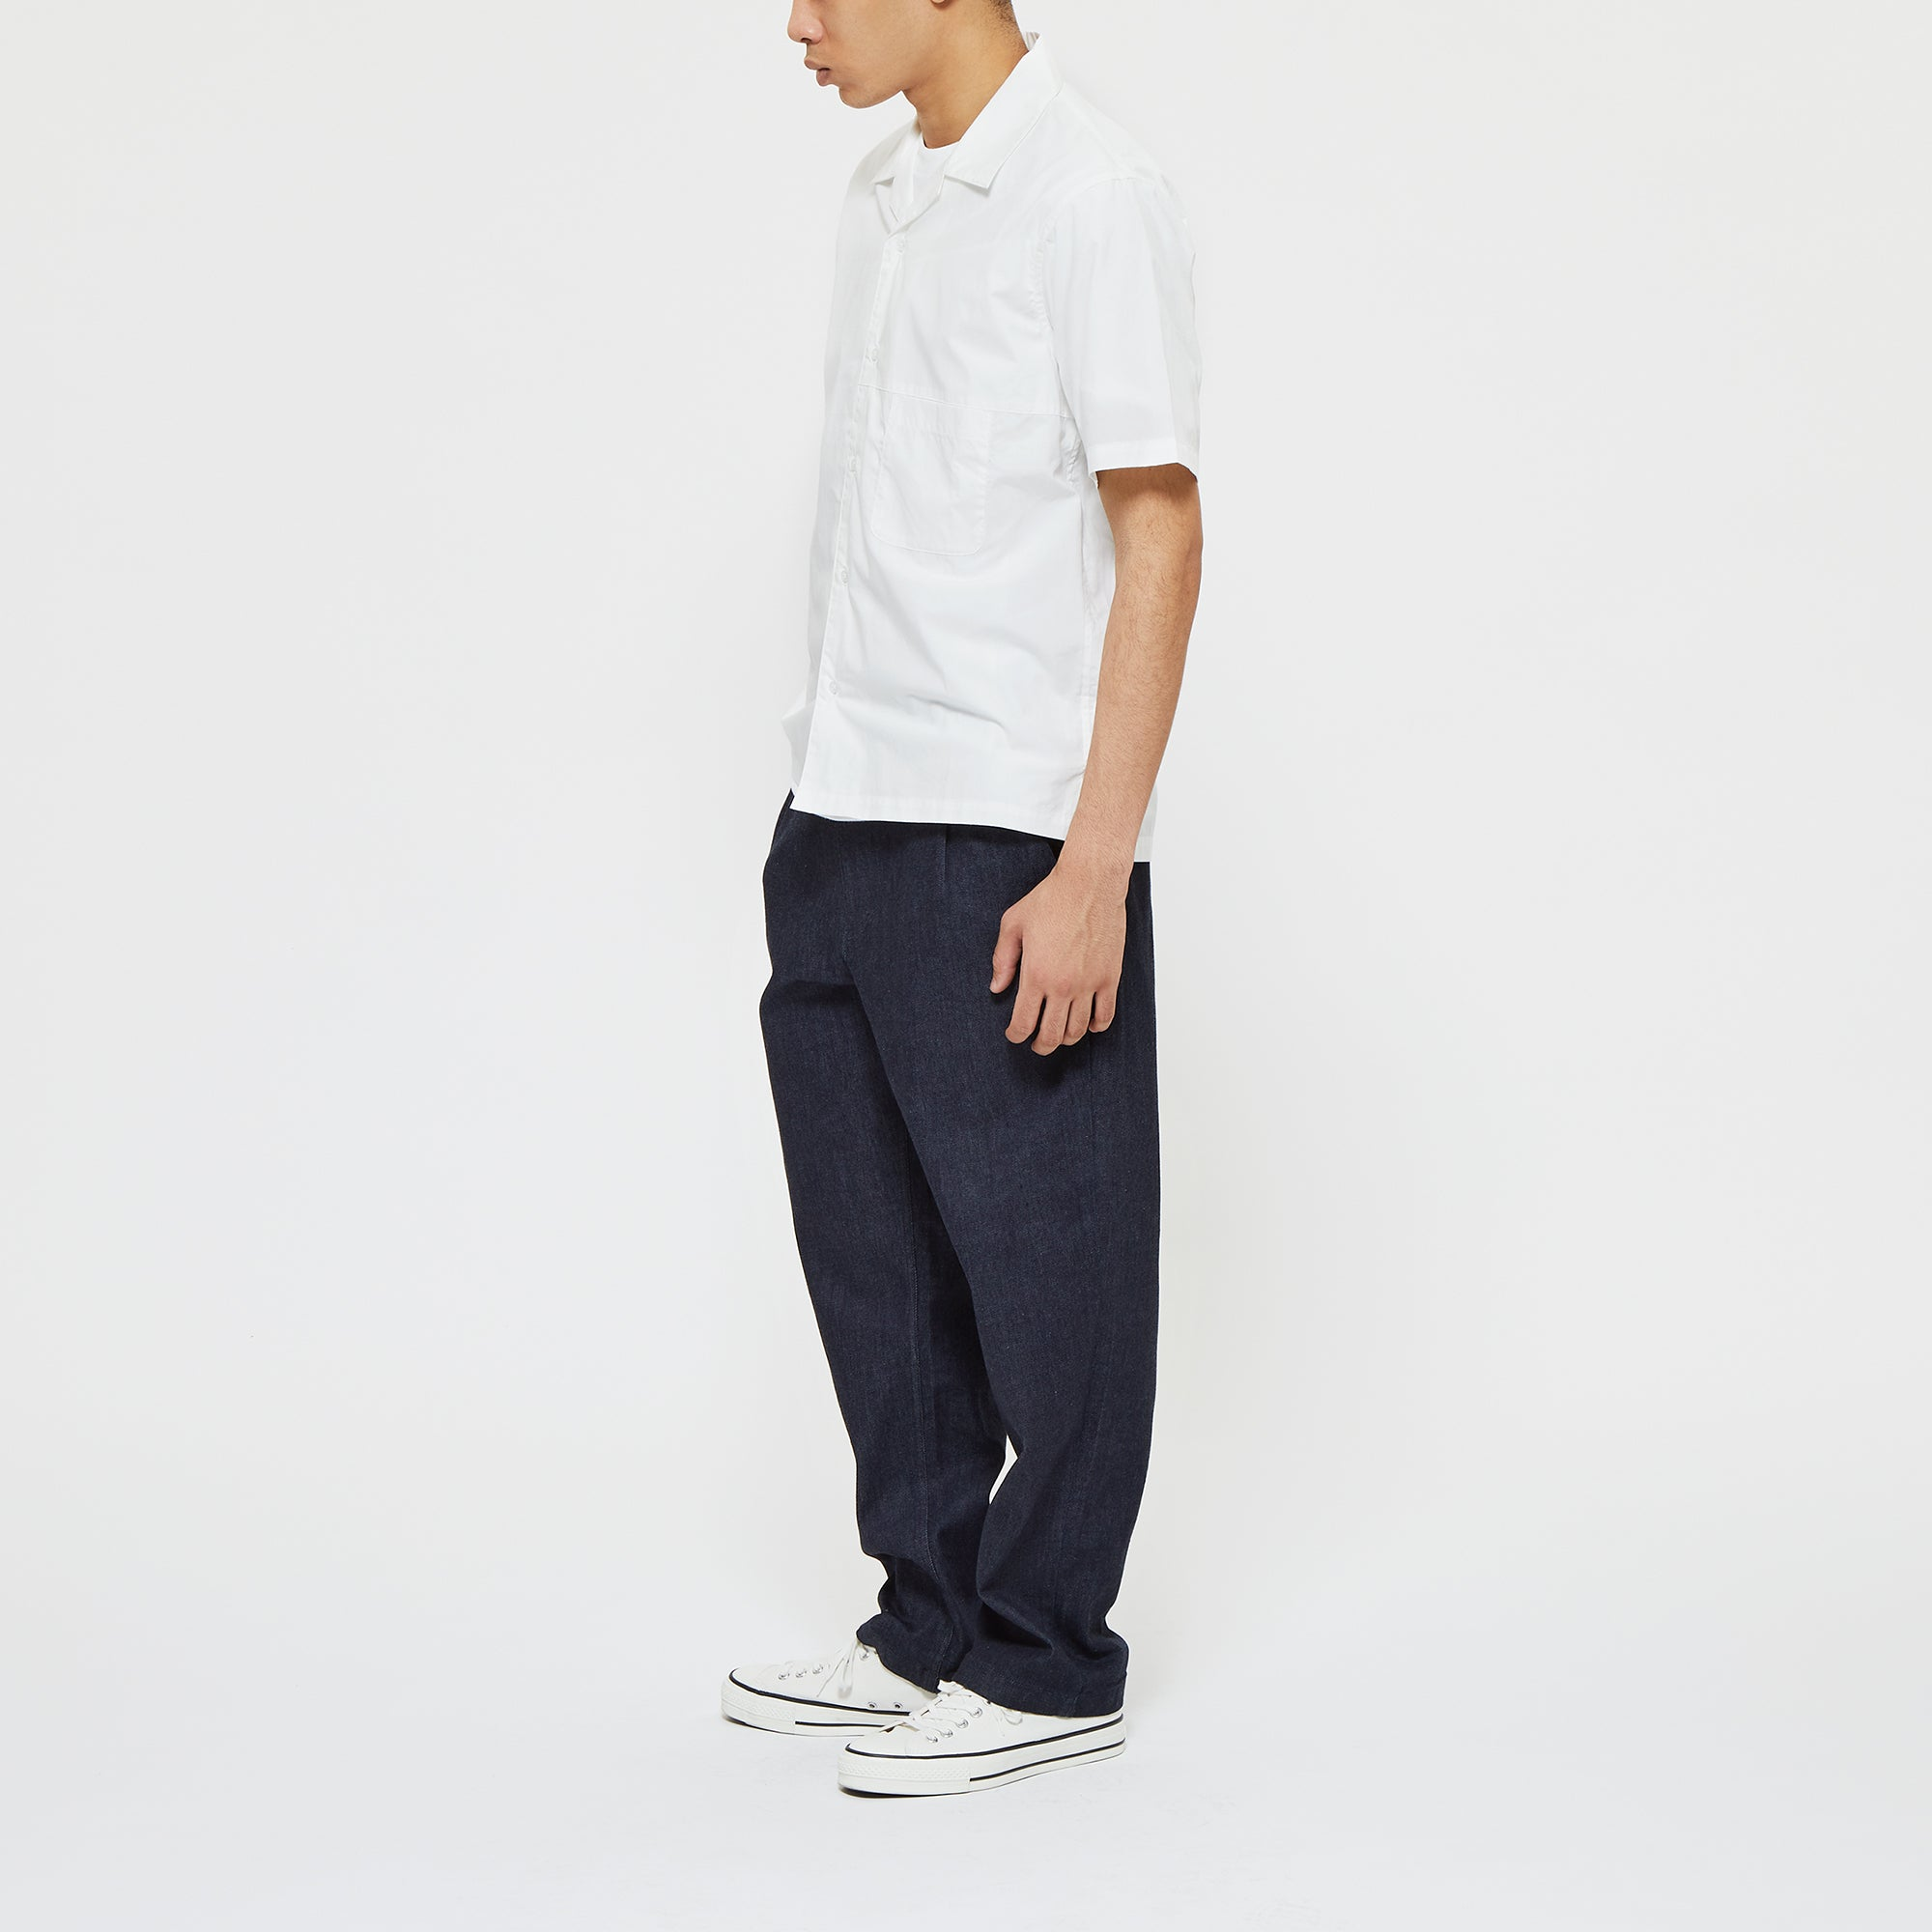 1 TUCK TAPERED STRETCH DENIM PANTS